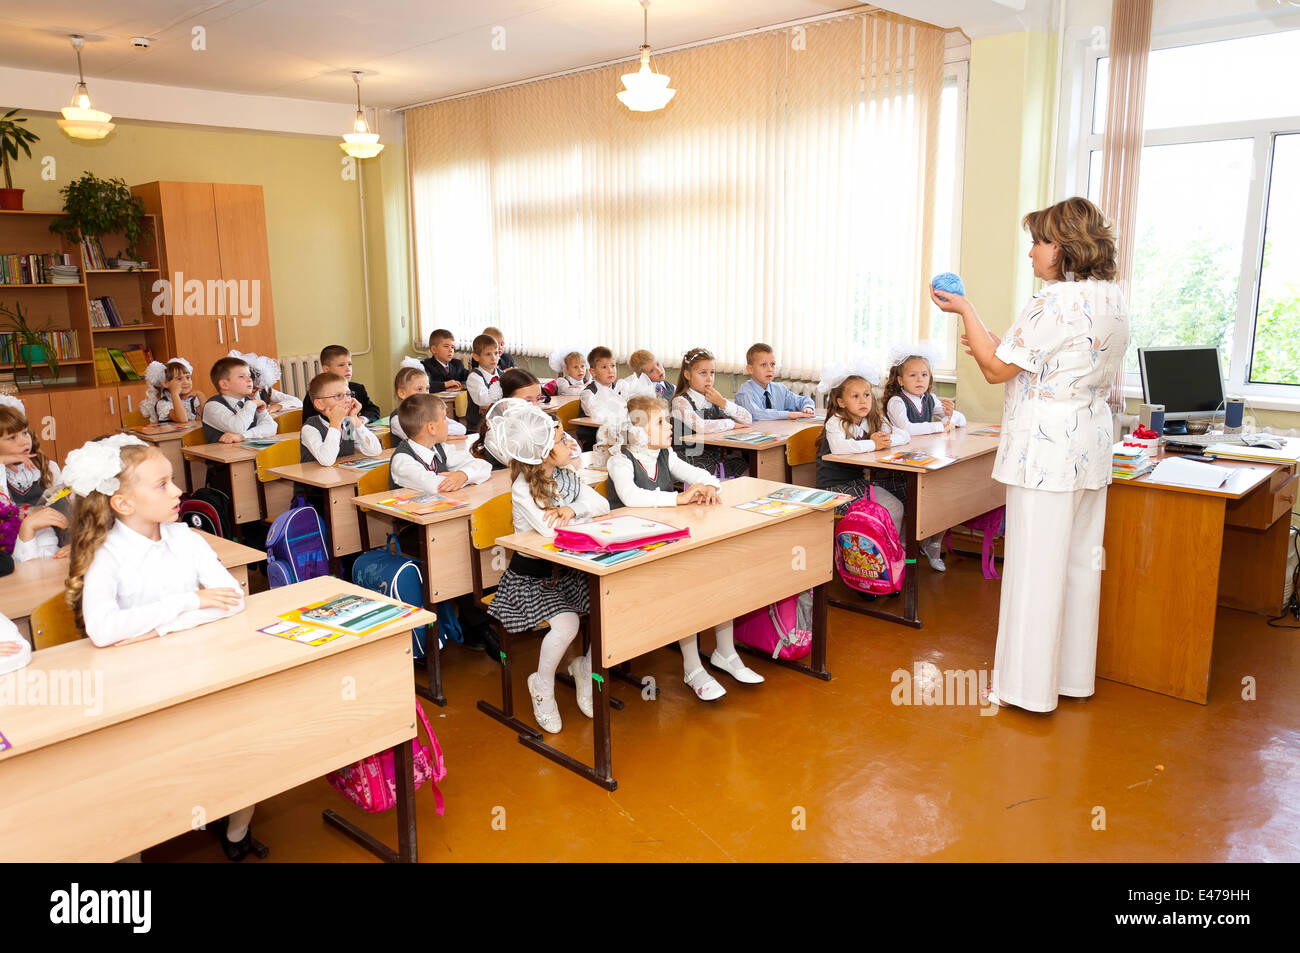 Elementary Classroom Pictures ~ Elementary school students at classroom desks and their